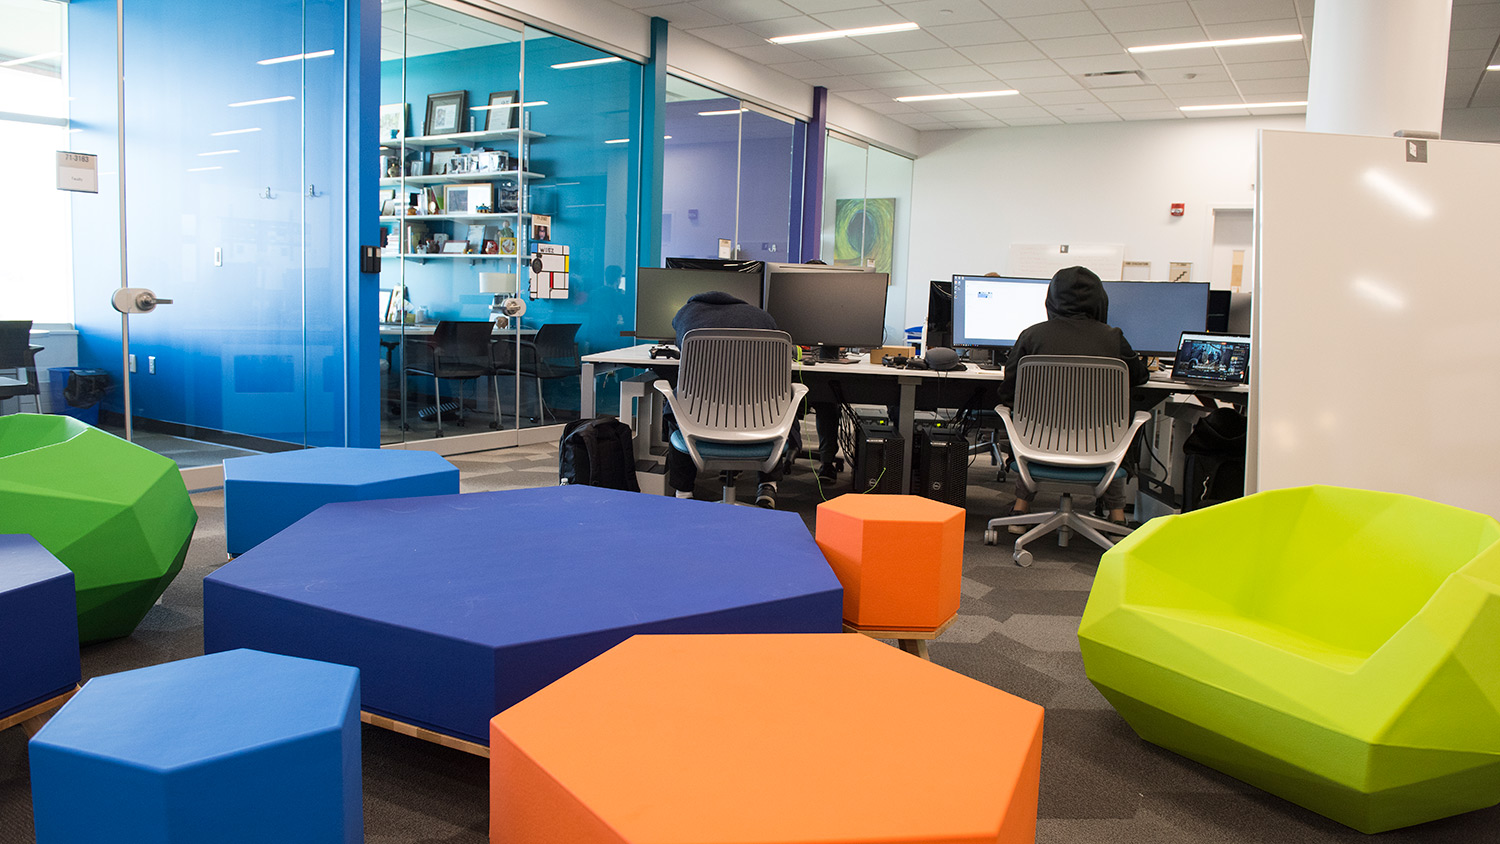 Open room with colorful, hexagonal seats and tables with desktop computers